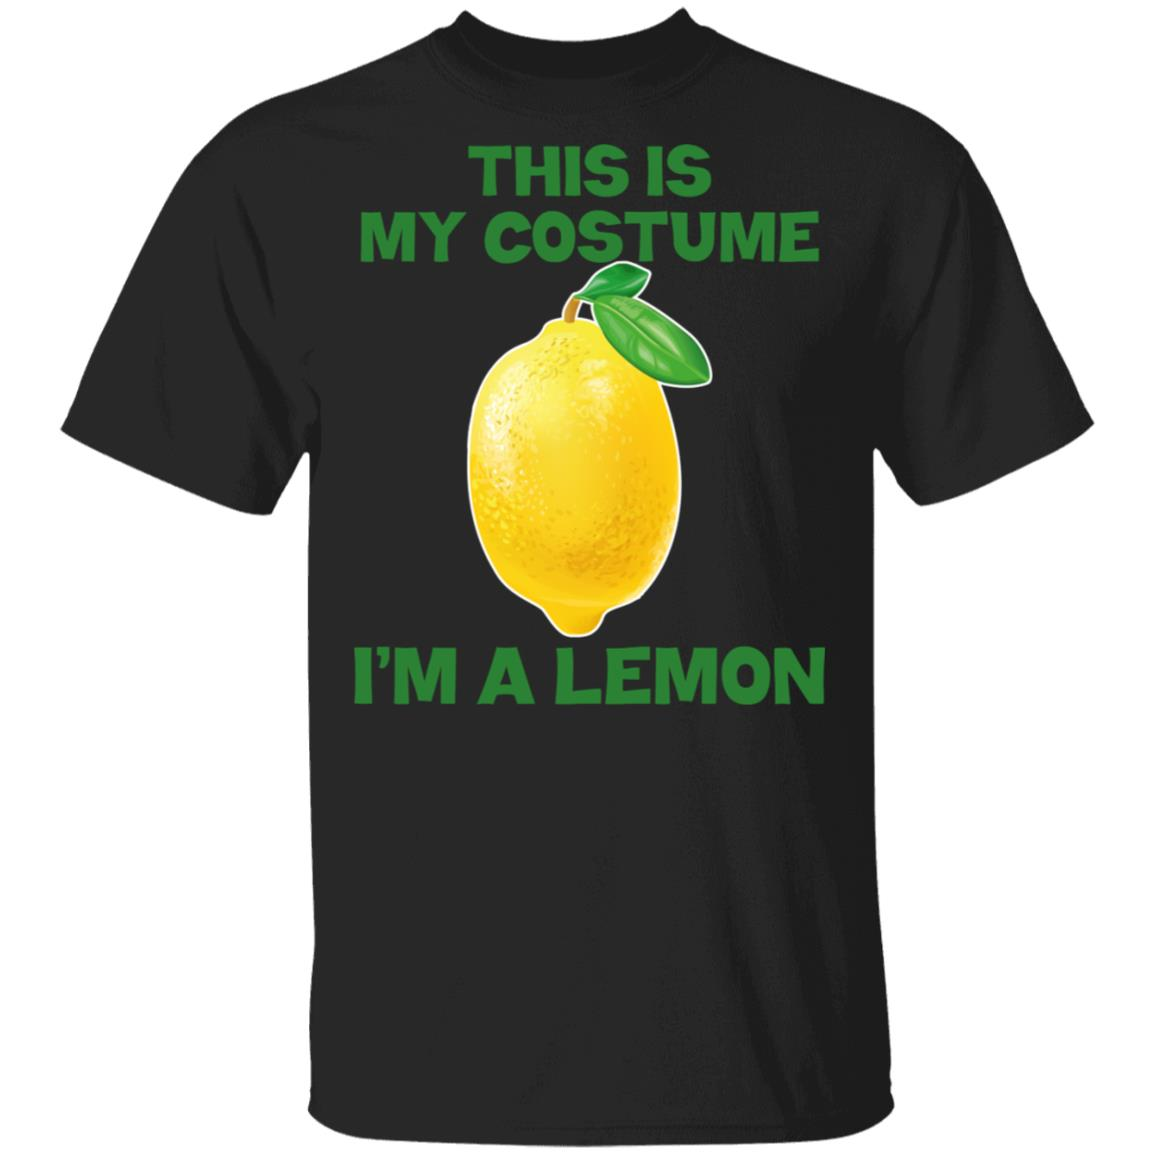 I'm A Lemon This Is My Costume Unisex Short Sleeve